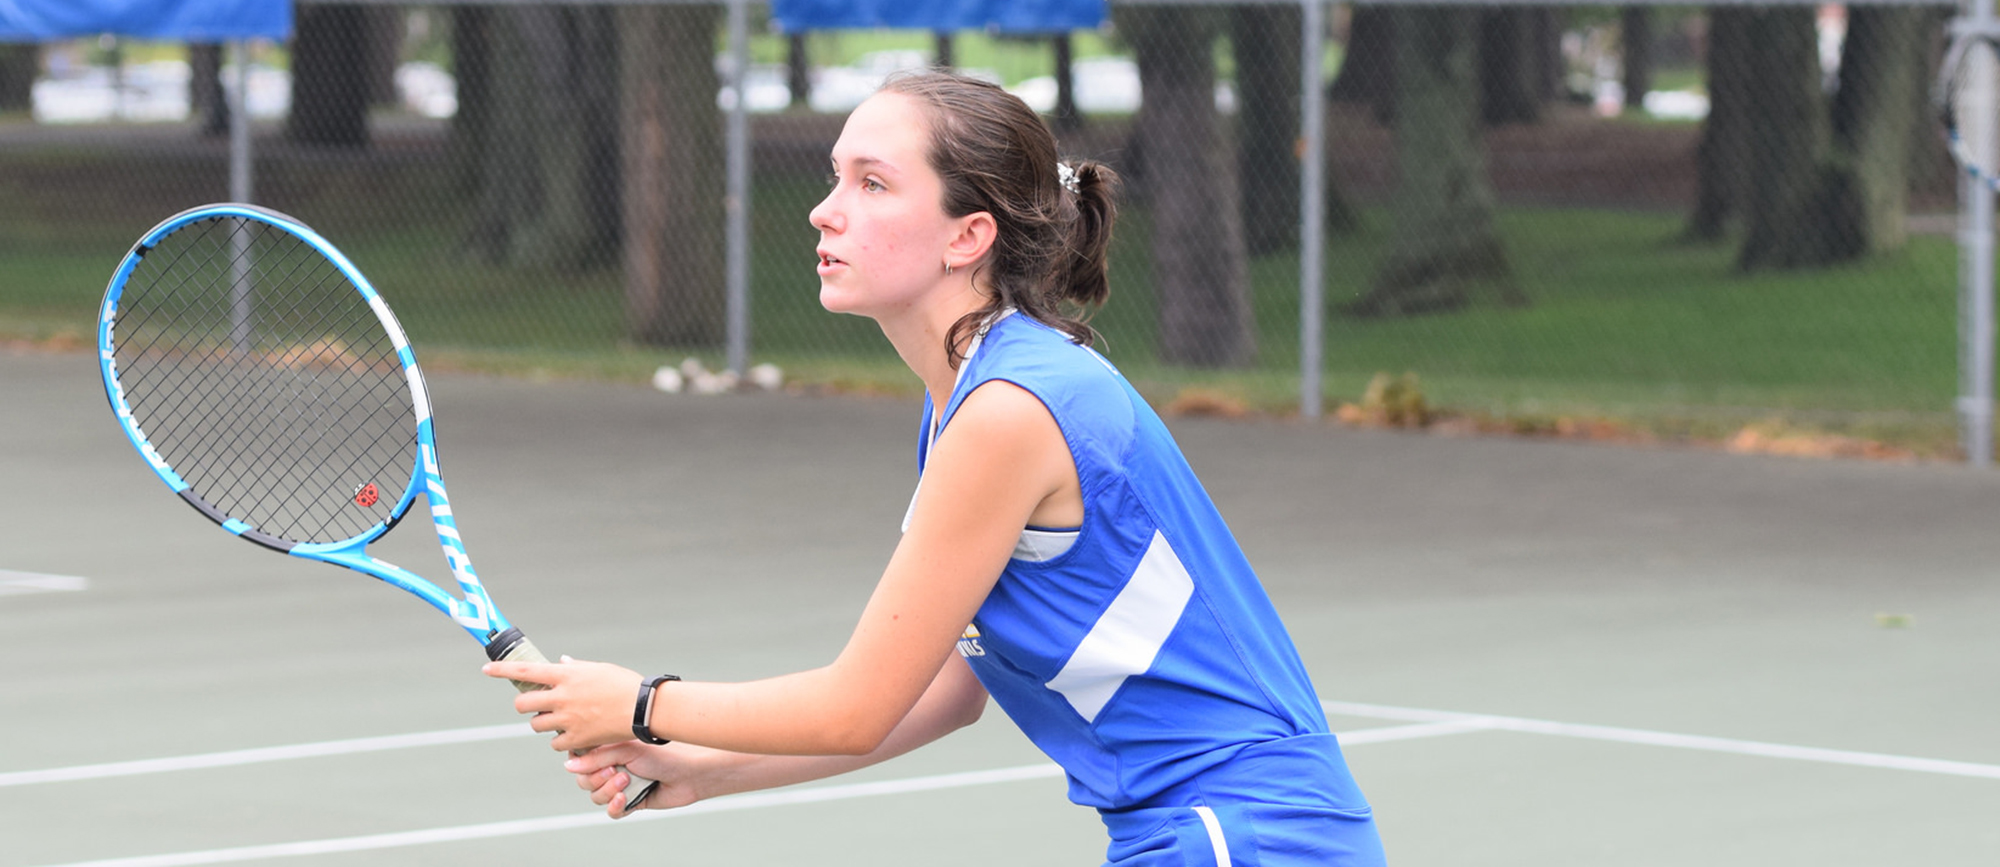 Freshman Janet Martinelli picked up a 6-0 win at No. 5 singles in Western New England's 9-0 victory over Wentworth on Friday. (Photo by Rachael Margossian)